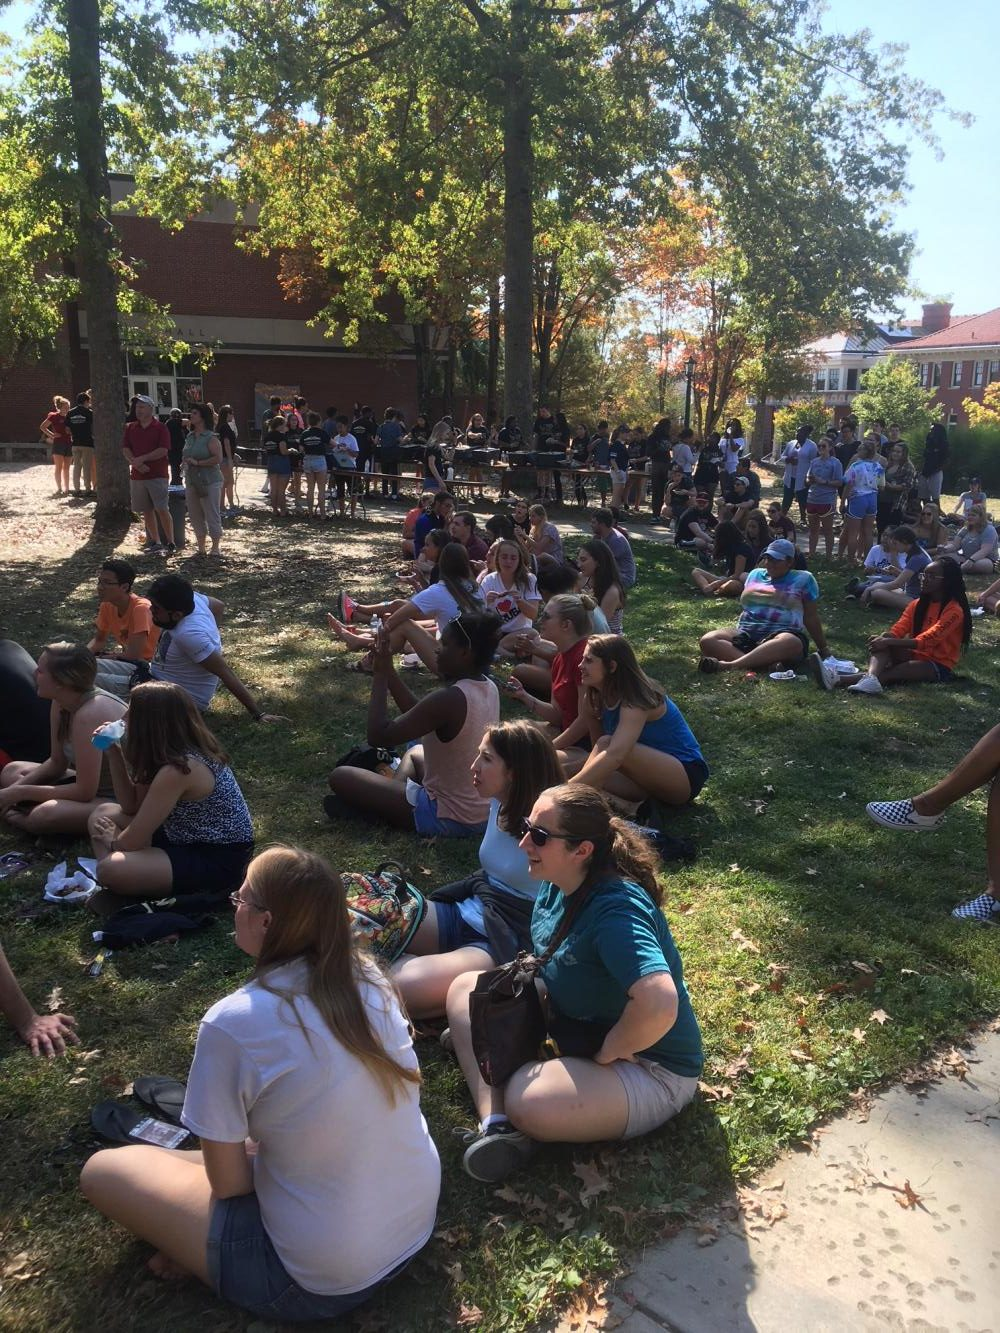 Members of the Allegheny community watch the wing-eating competition on the Gator Quad.